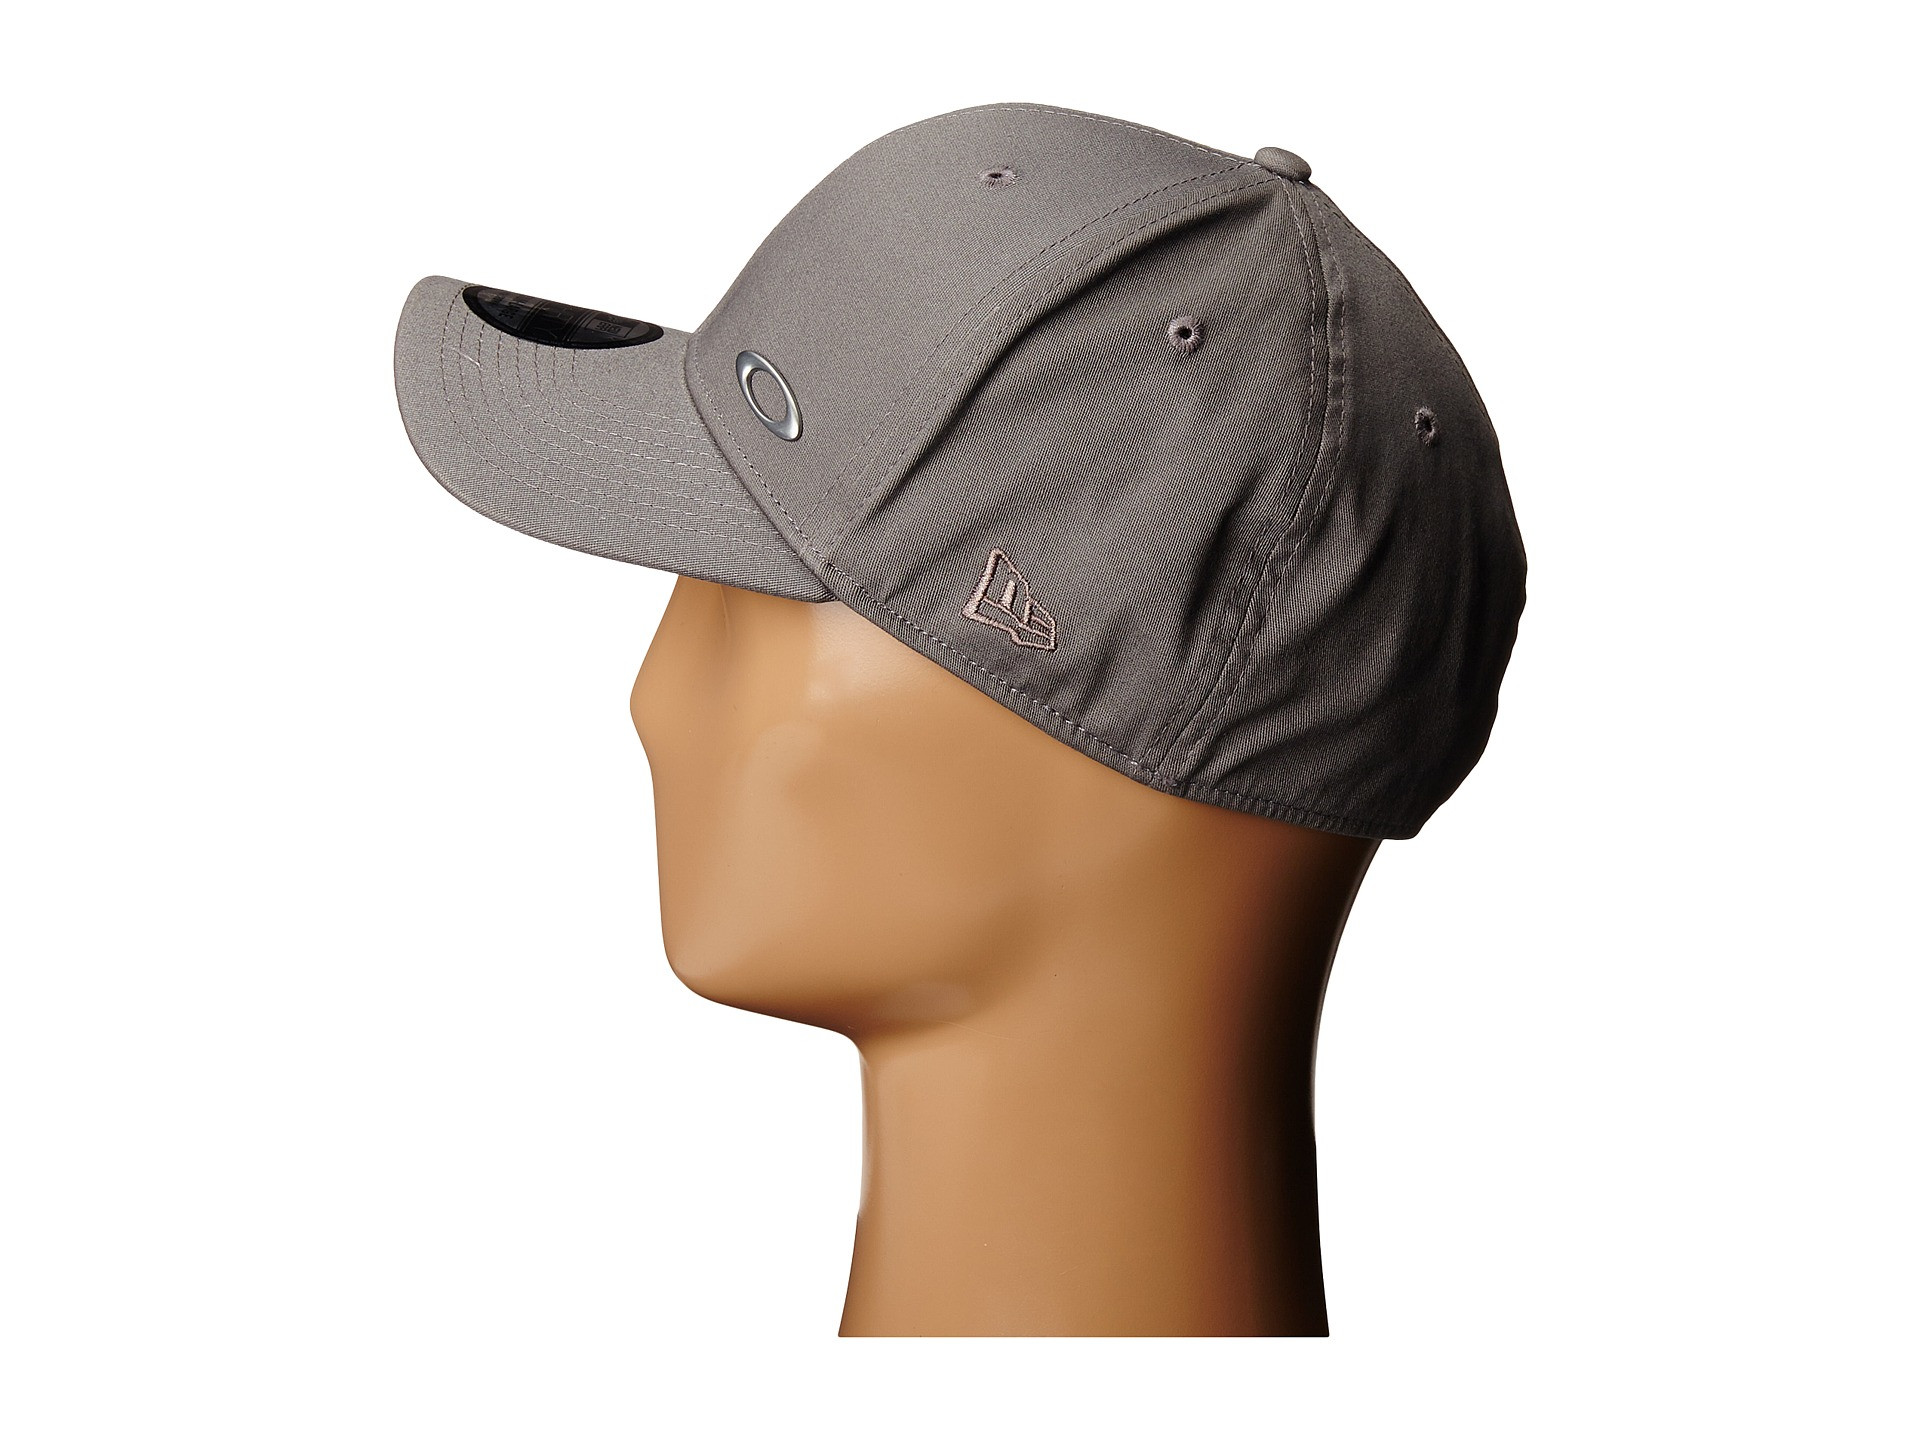 Lyst - Oakley Tinfoil Cap in Gray for Men eaec43b9db29